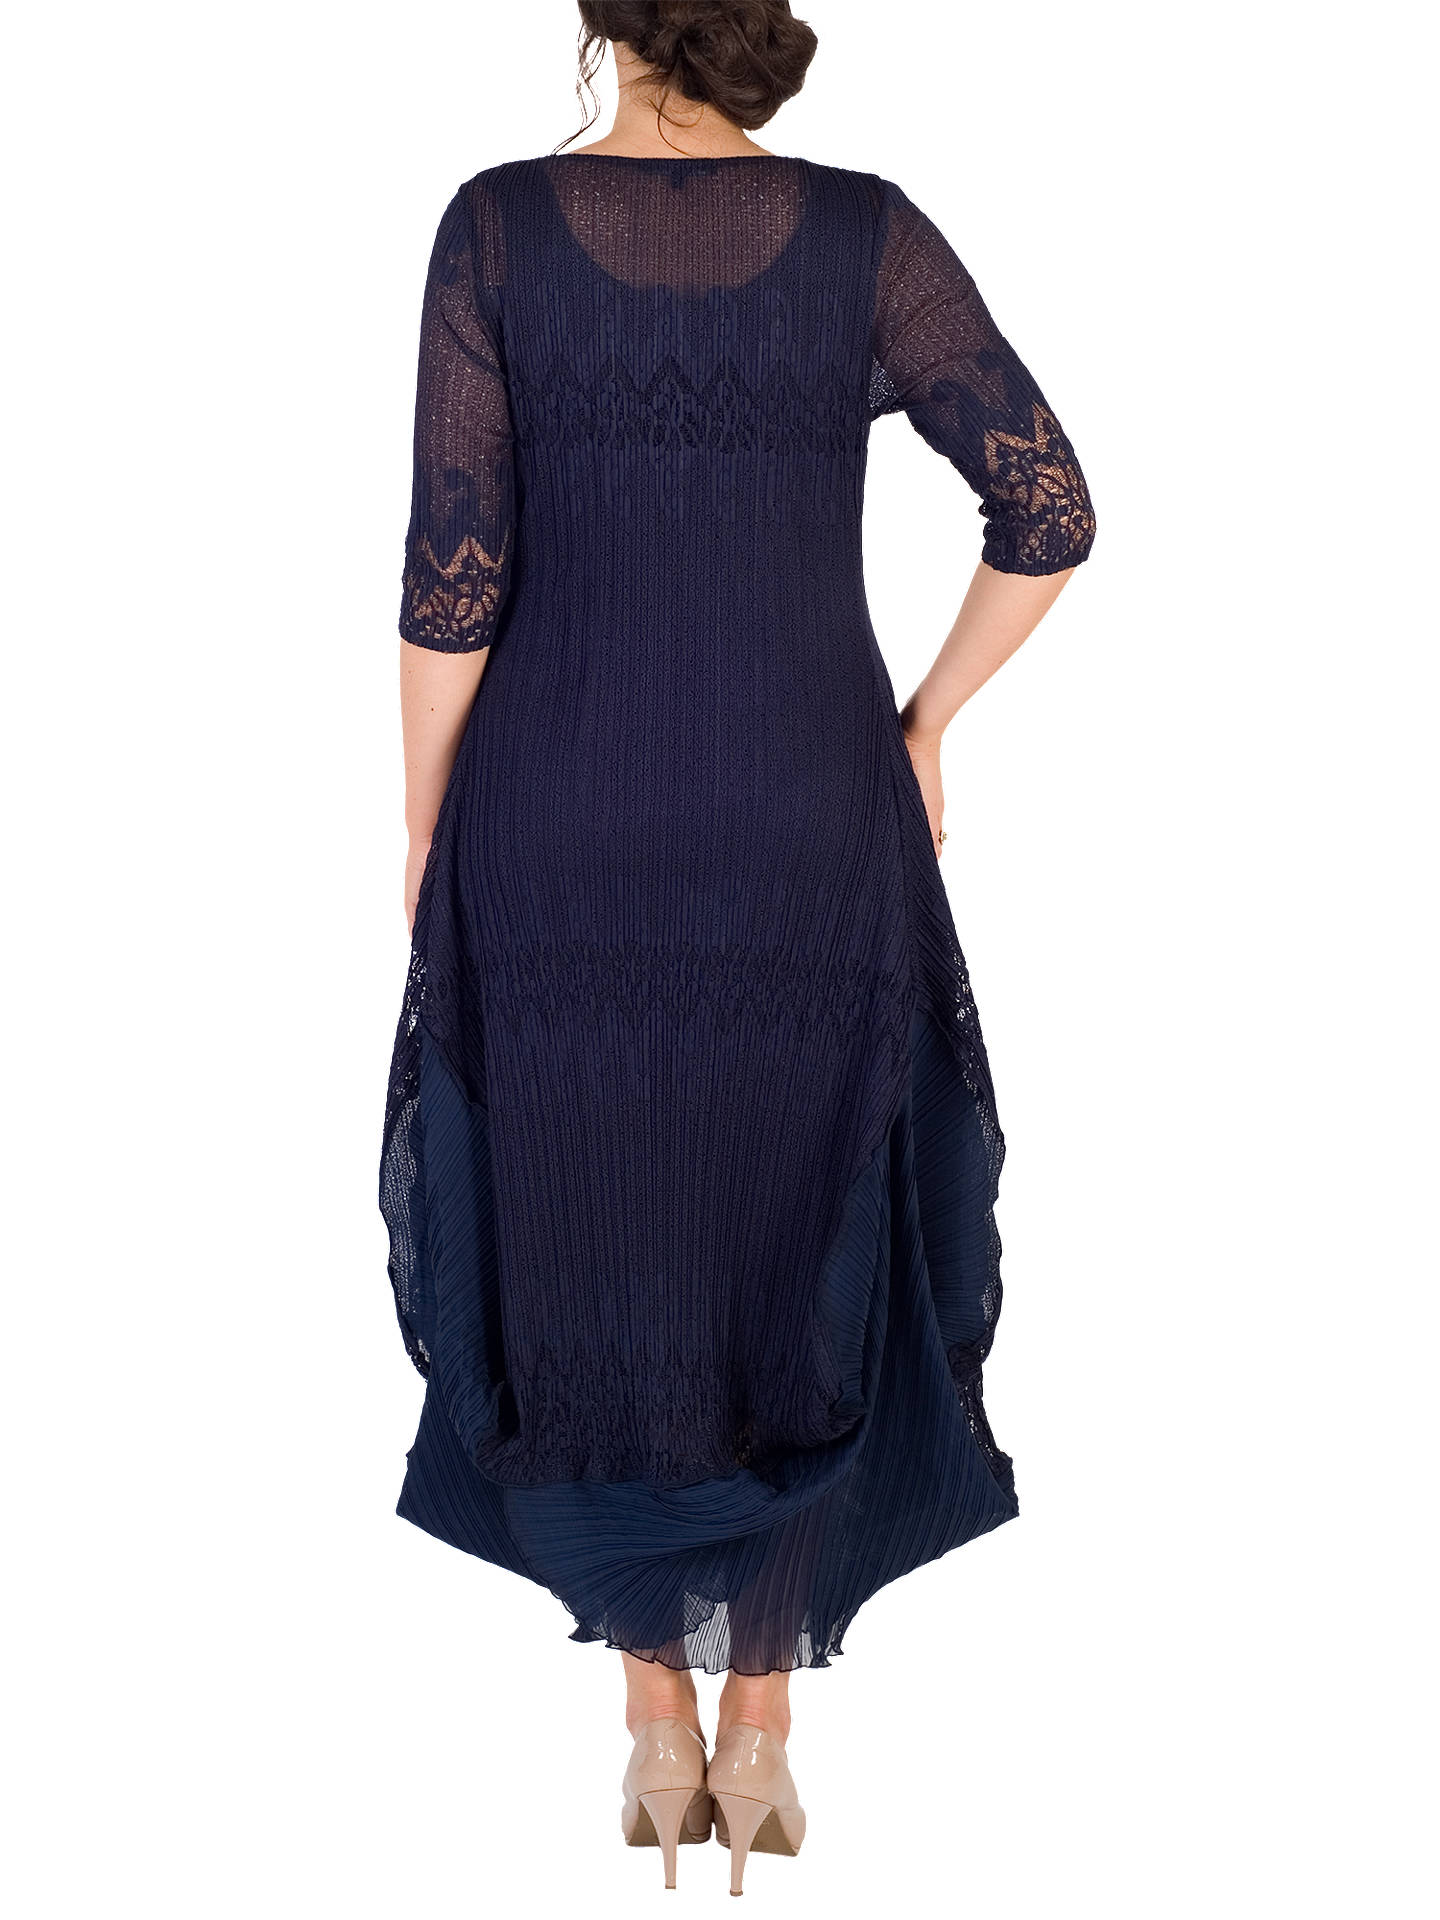 BuyChesca Chiffon Flounce Trimmed Dress, Navy, 12-14 Online at johnlewis.com